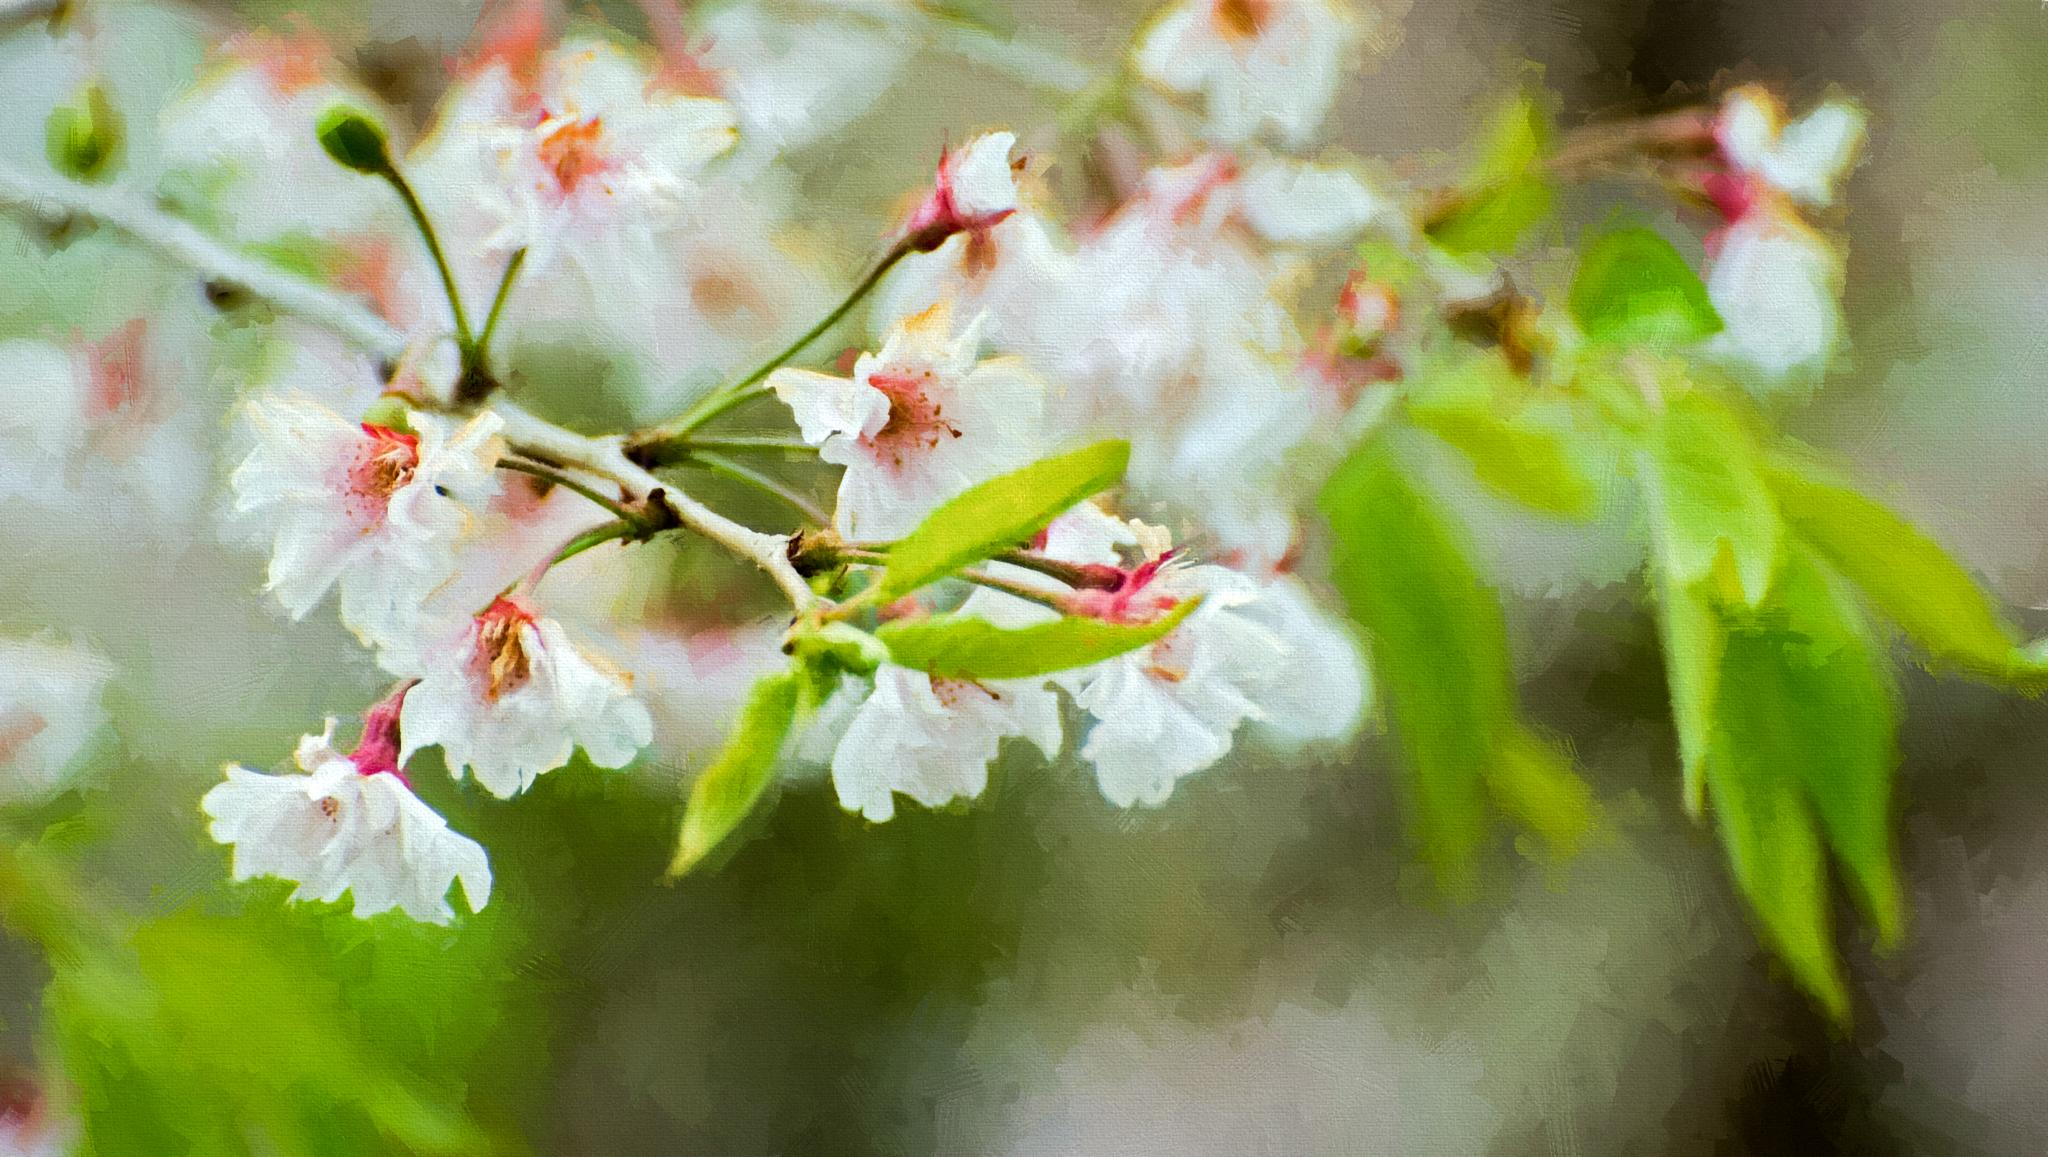 Dancing Cherry Blossoms by JohnEllingson